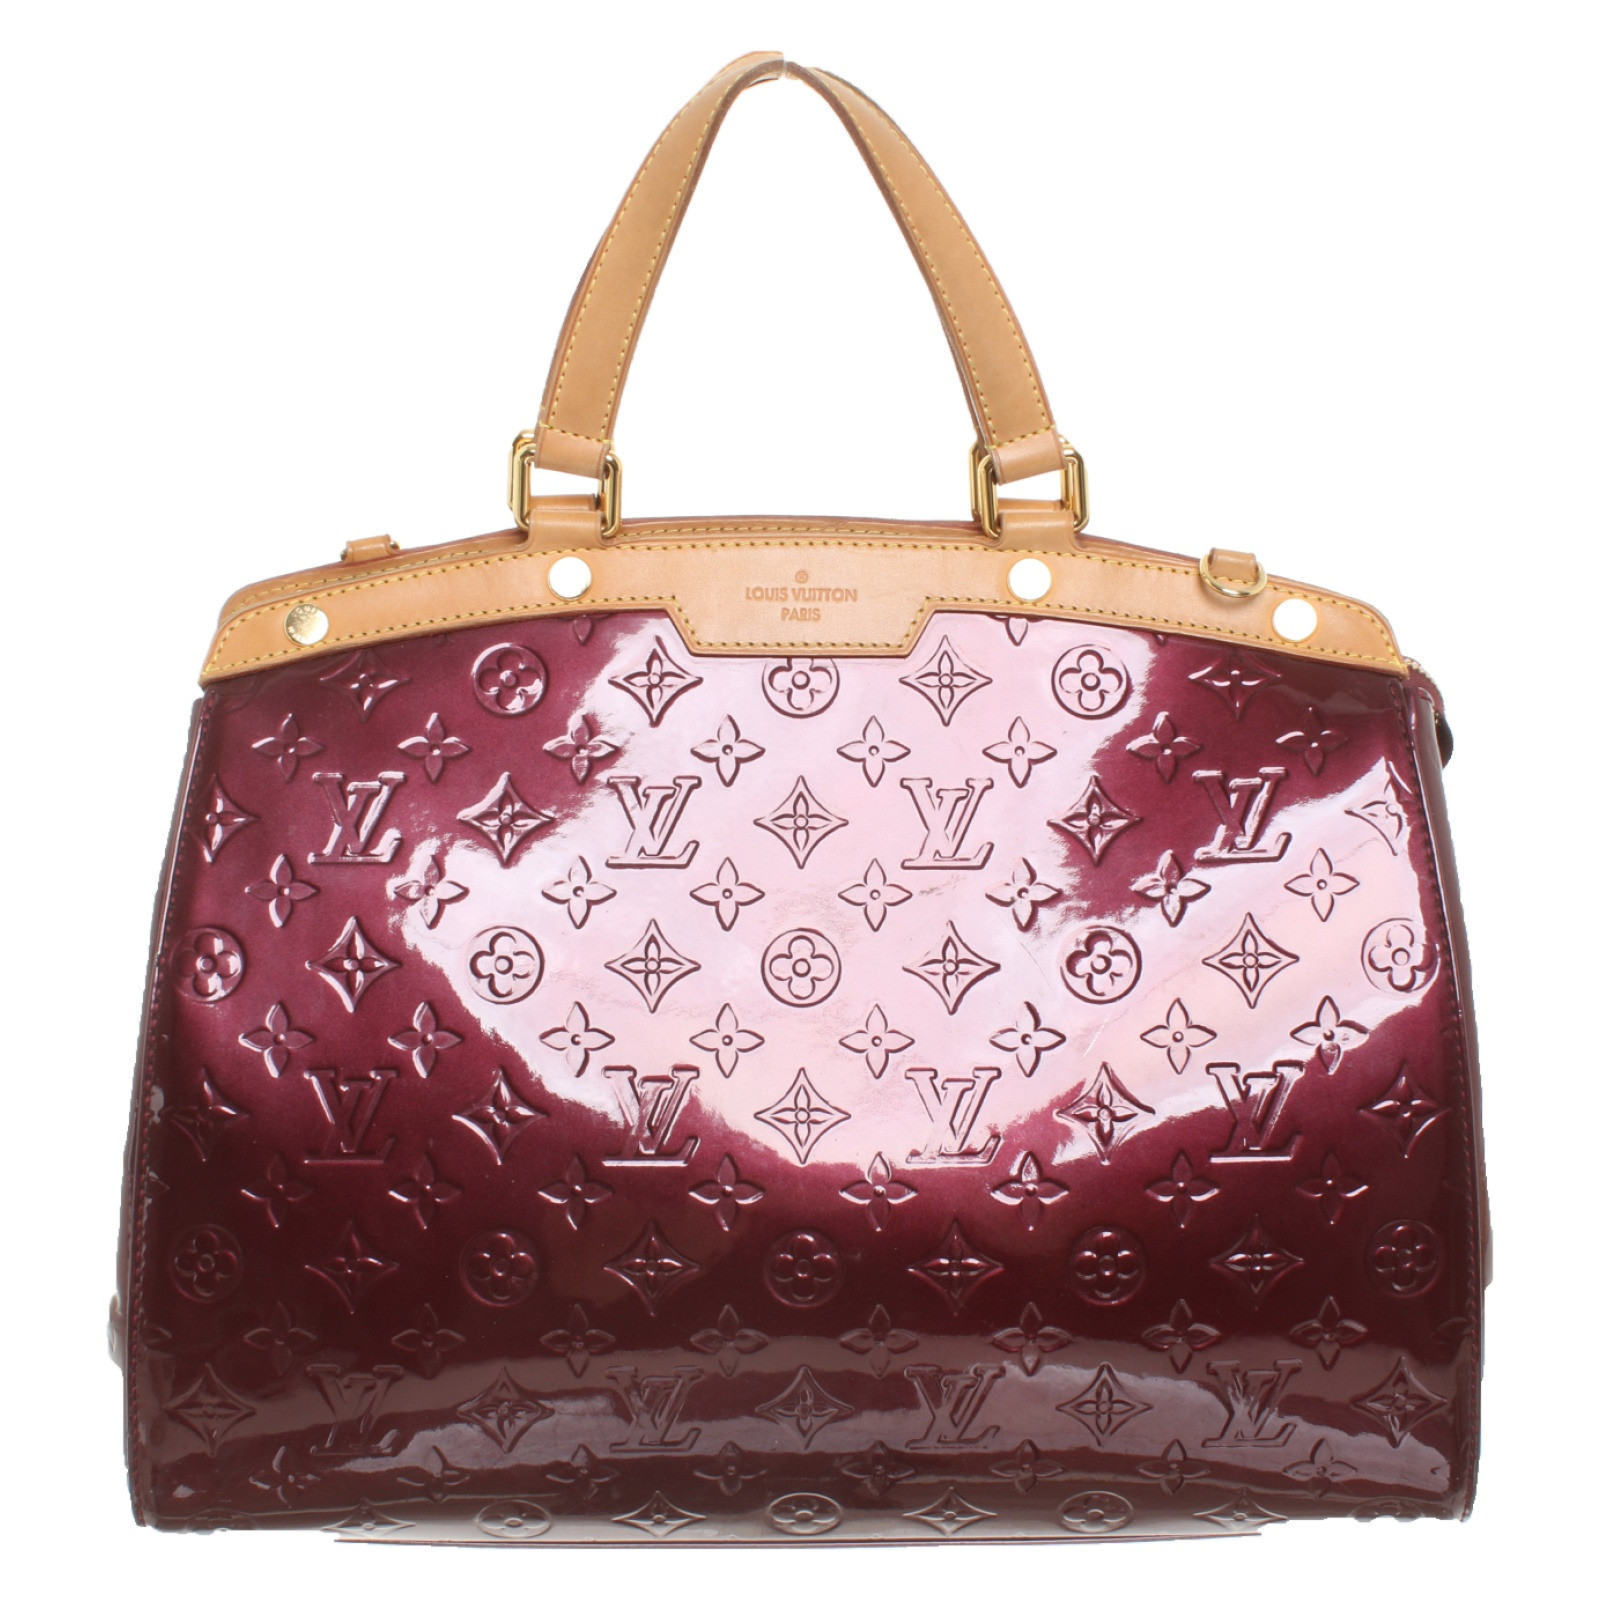 special for shoe sleek new images of Louis Vuitton Handbag Patent leather in Bordeaux - Second ...